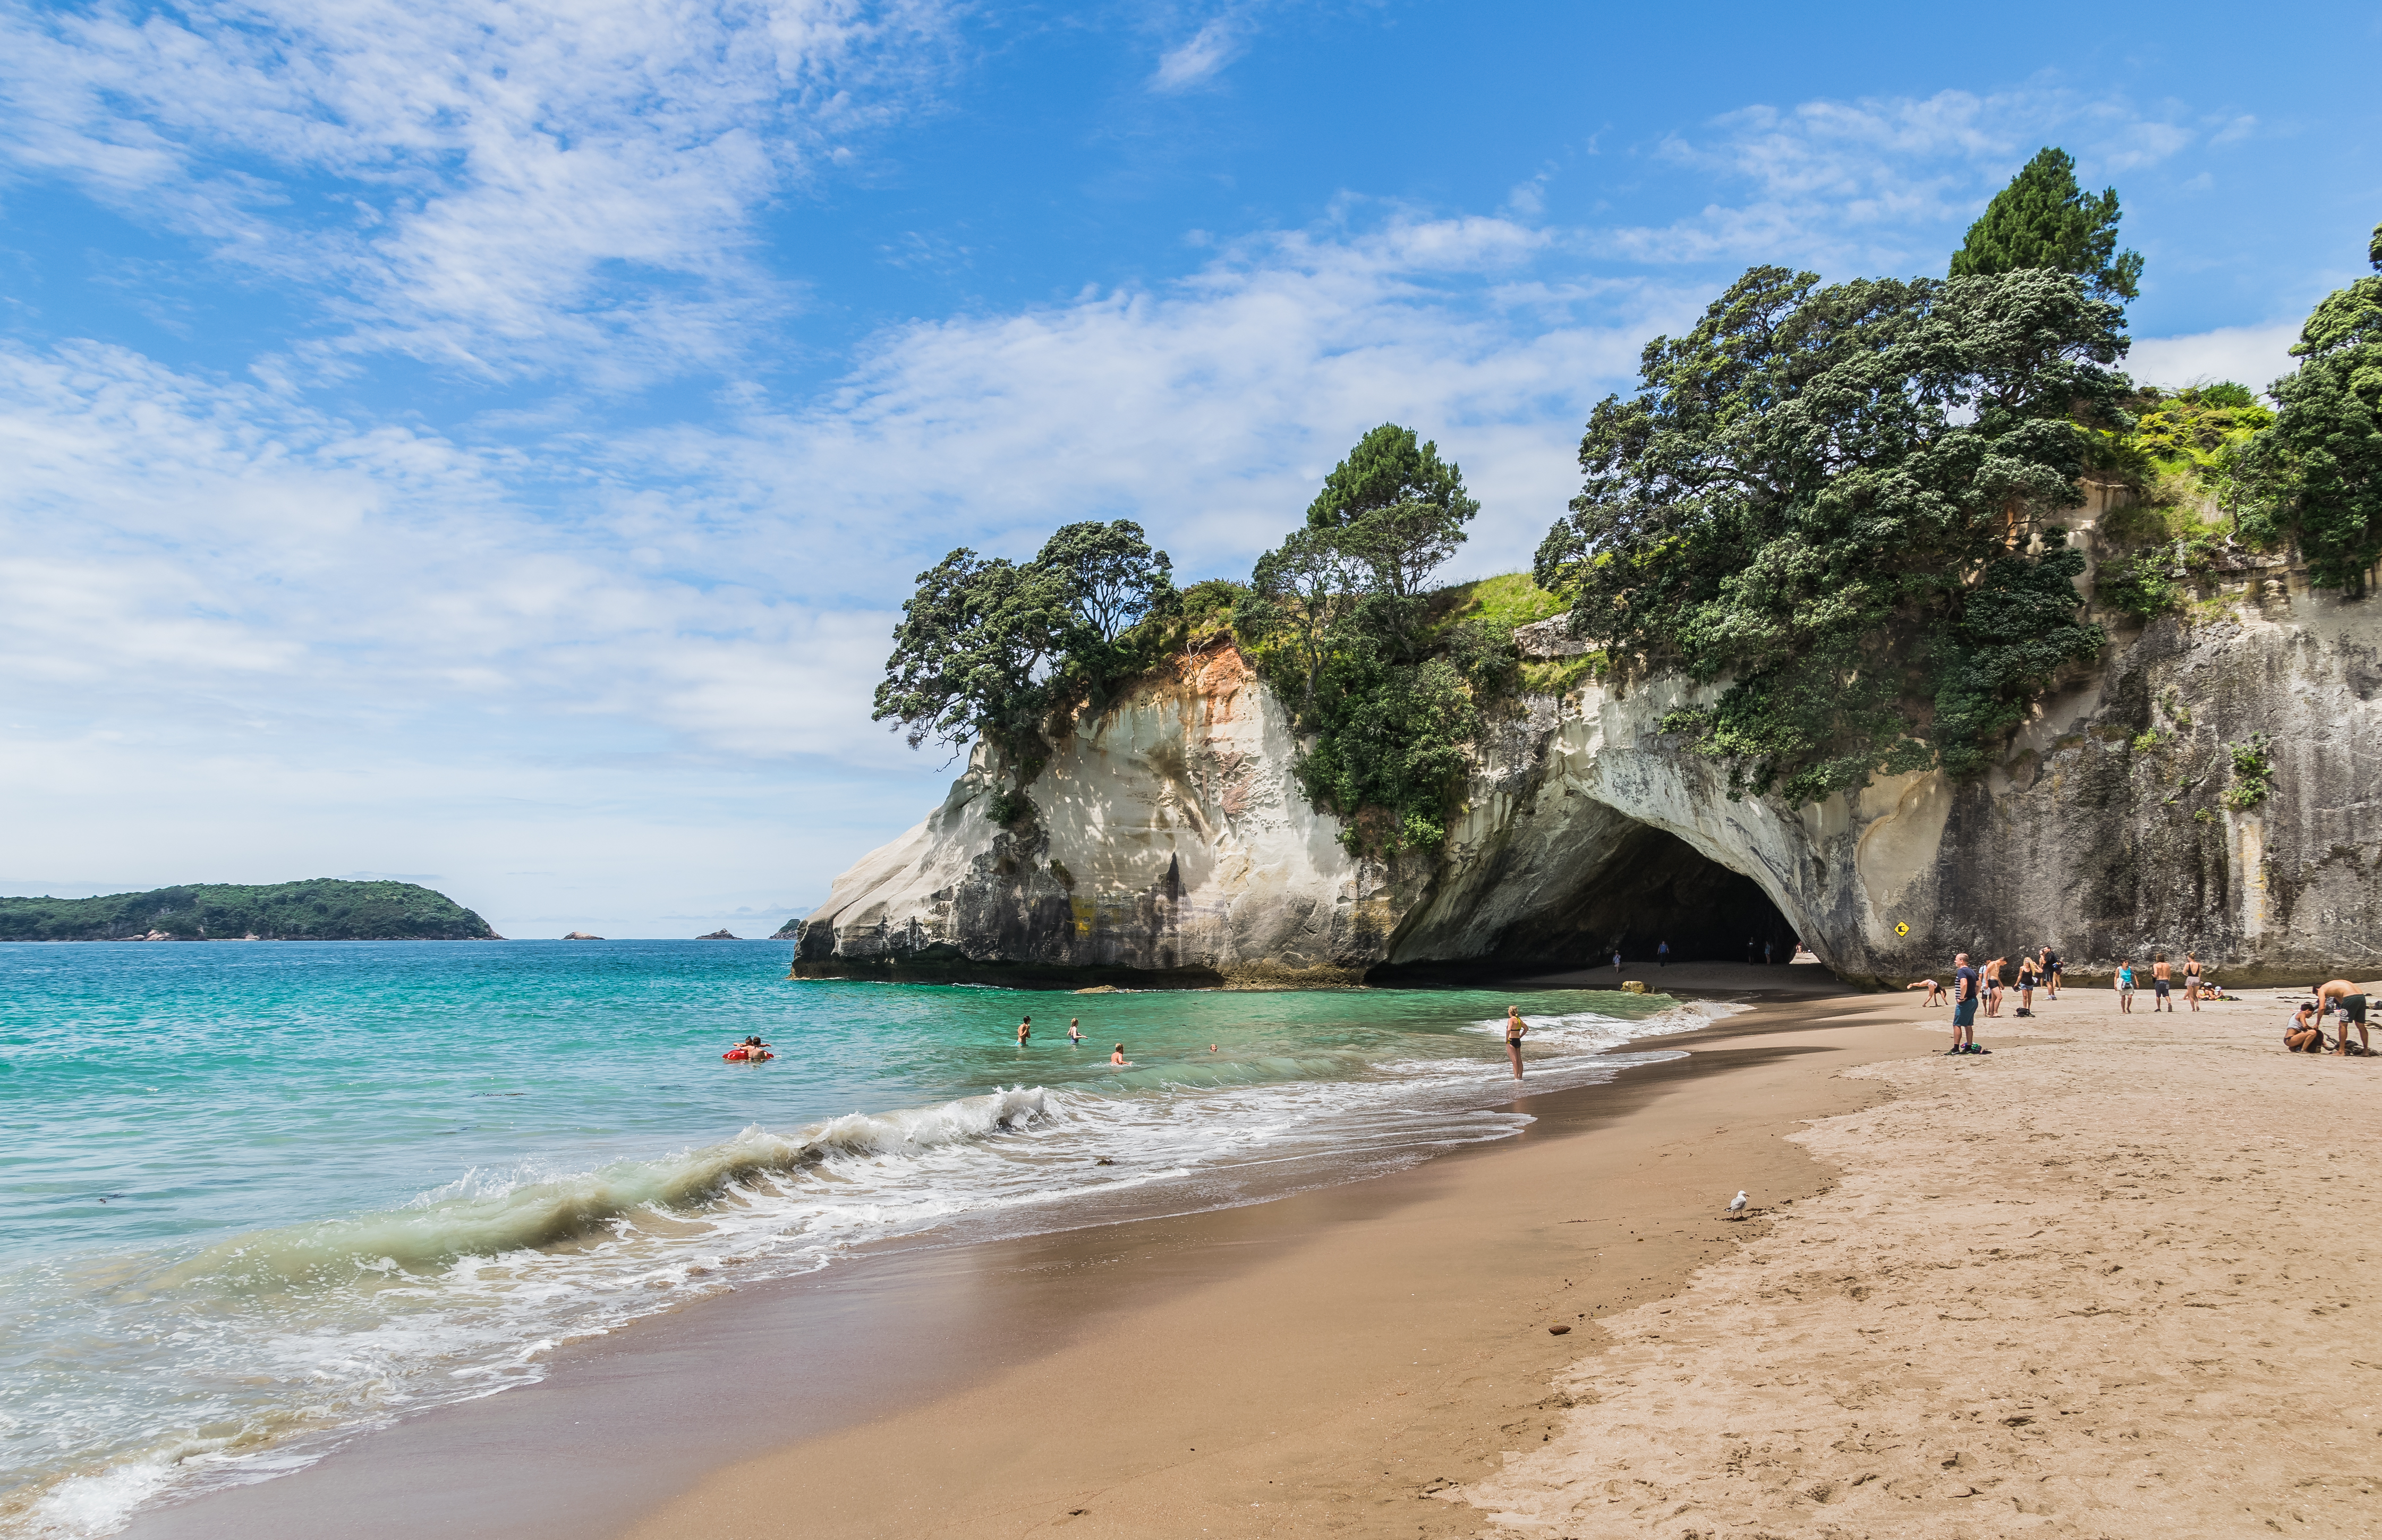 File:Cathedral Cove 06.jpg - Wikimedia Commons